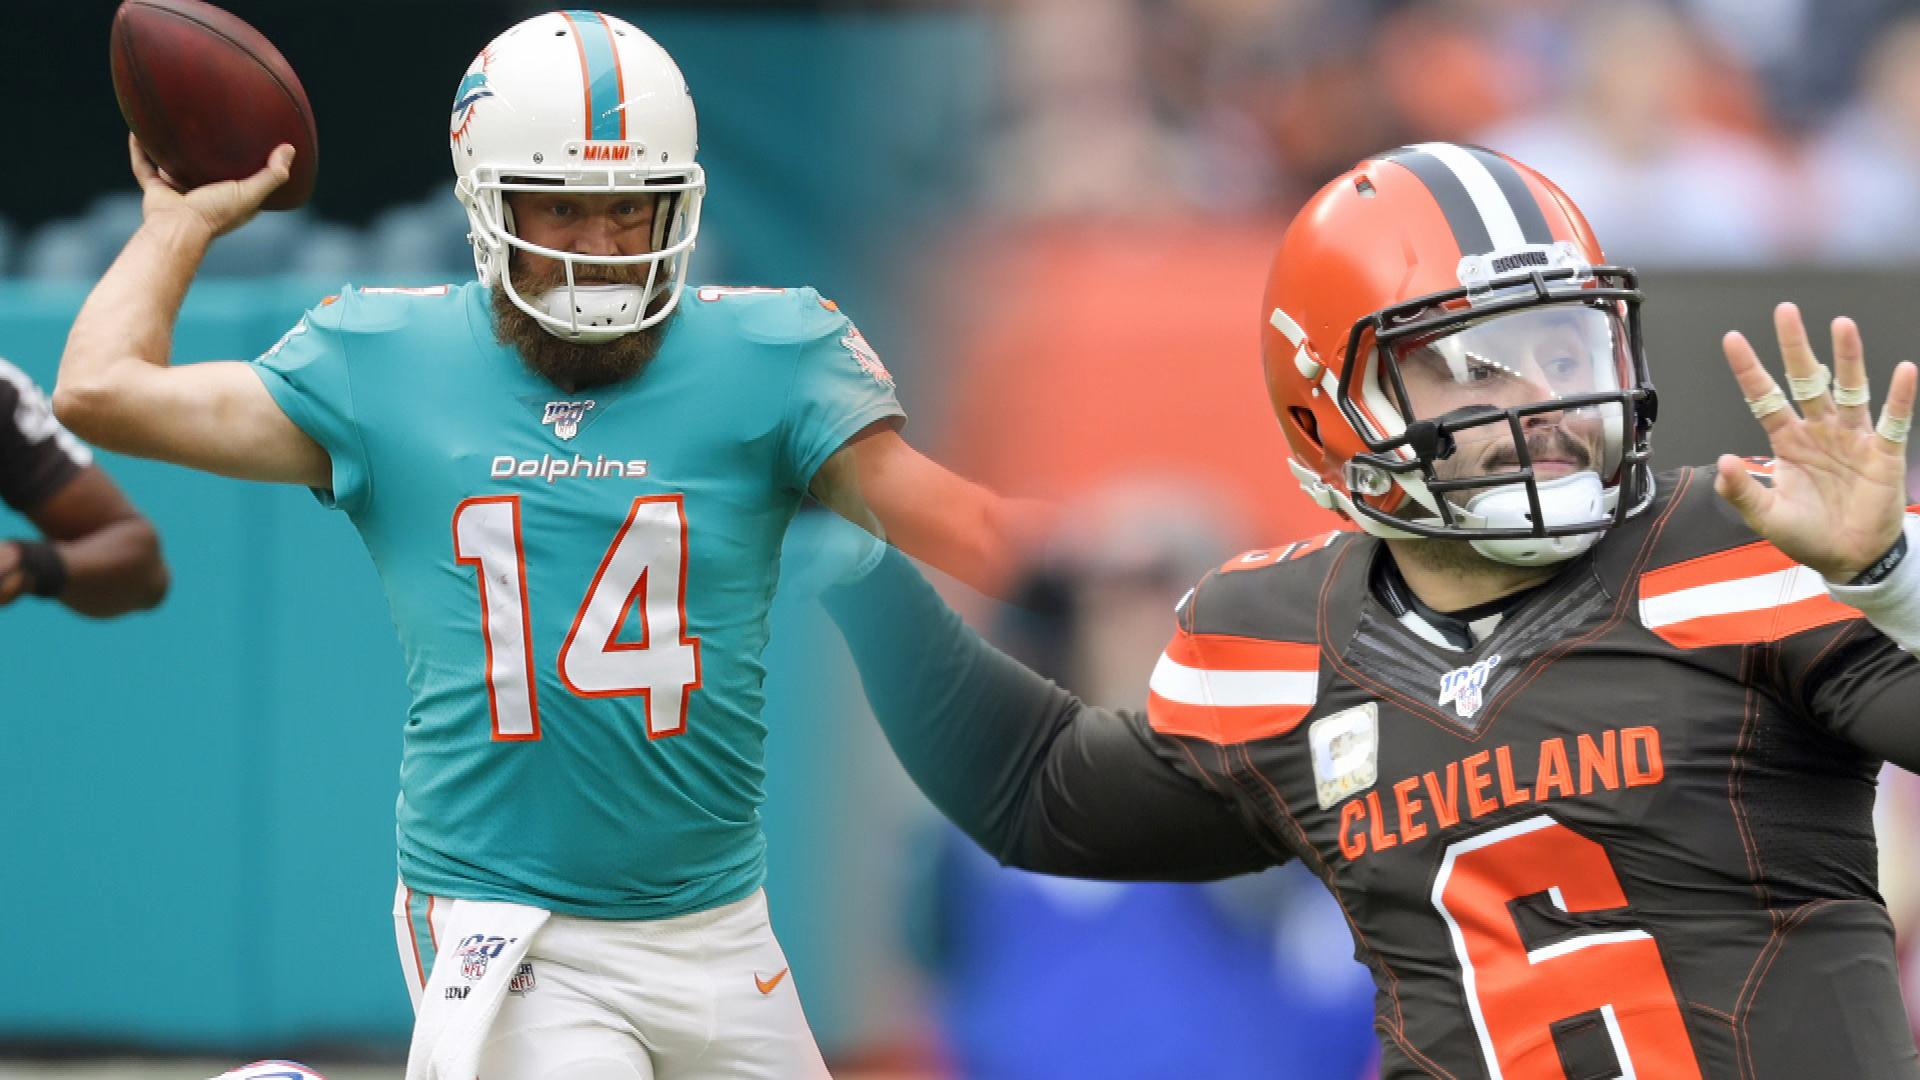 Dolphins vs. Browns NFL Week 12 fantasy preview